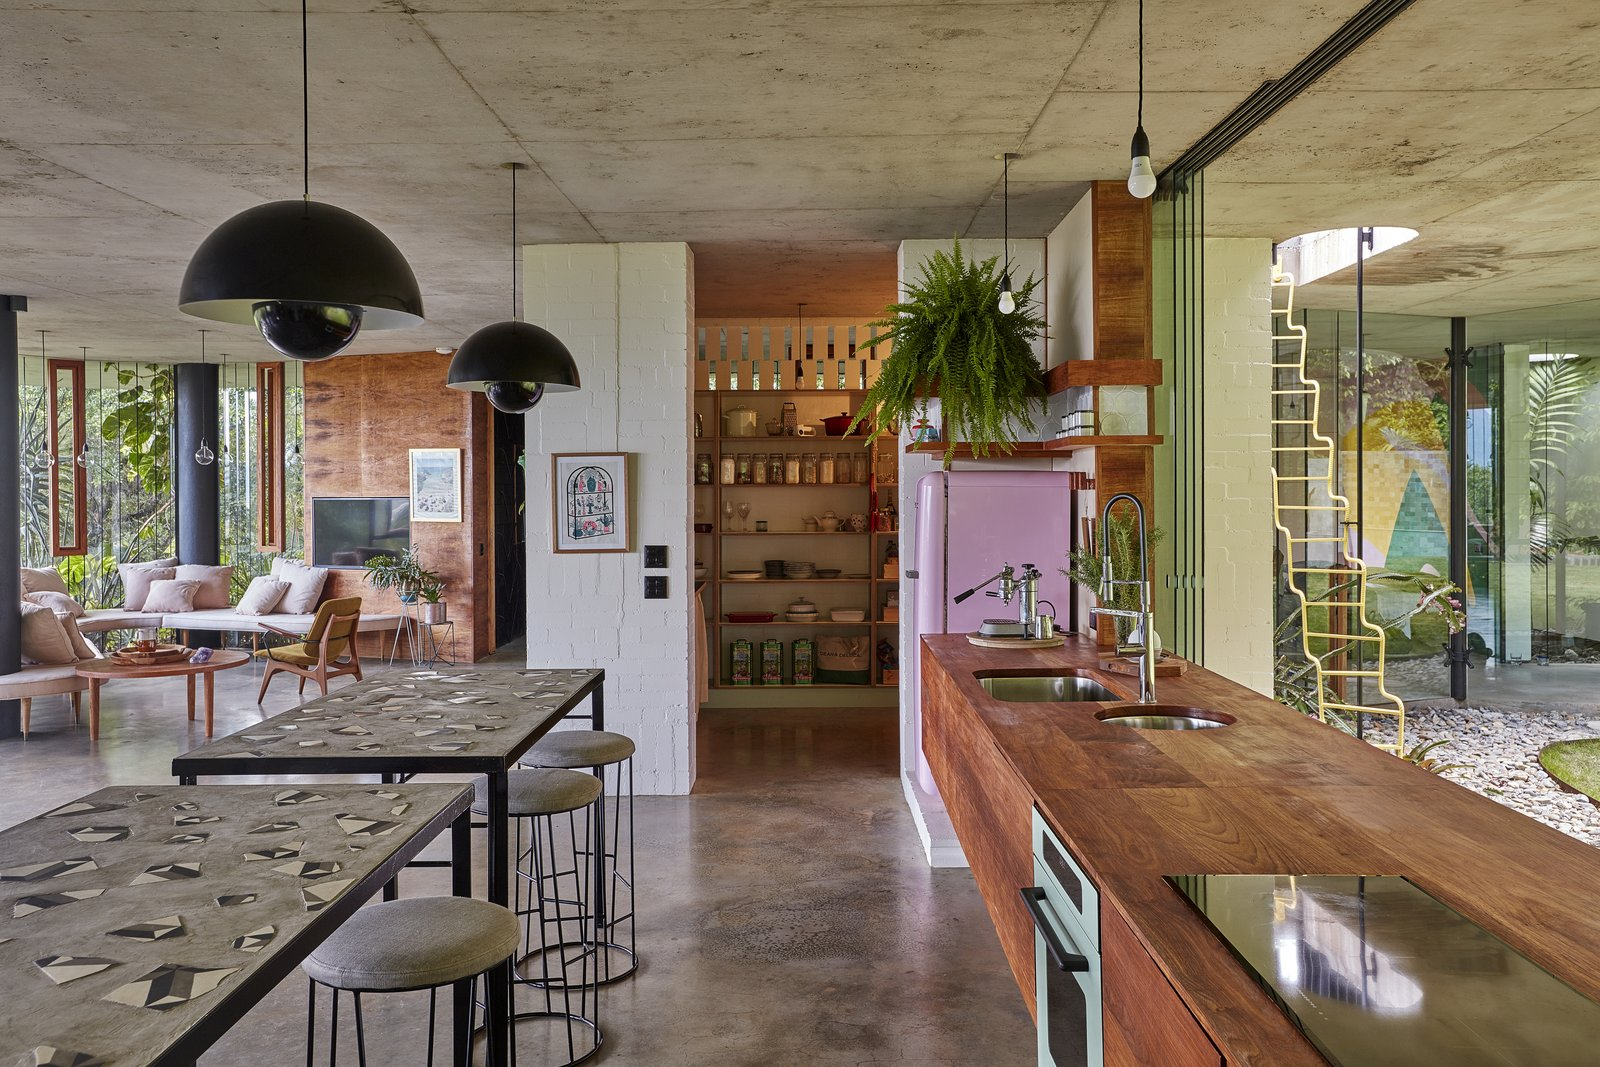 Kitchen, Cooktops, Concrete, Pendant, Wall Oven, Wood, and Undermount Between the common areas and the master bedroom is a timber wall with a bookshelf on one side.  Kitchen Cooktops Undermount Wall Oven Wood Photos from A Funky, Curvaceous Rainforest Home in Australia Hits the Market